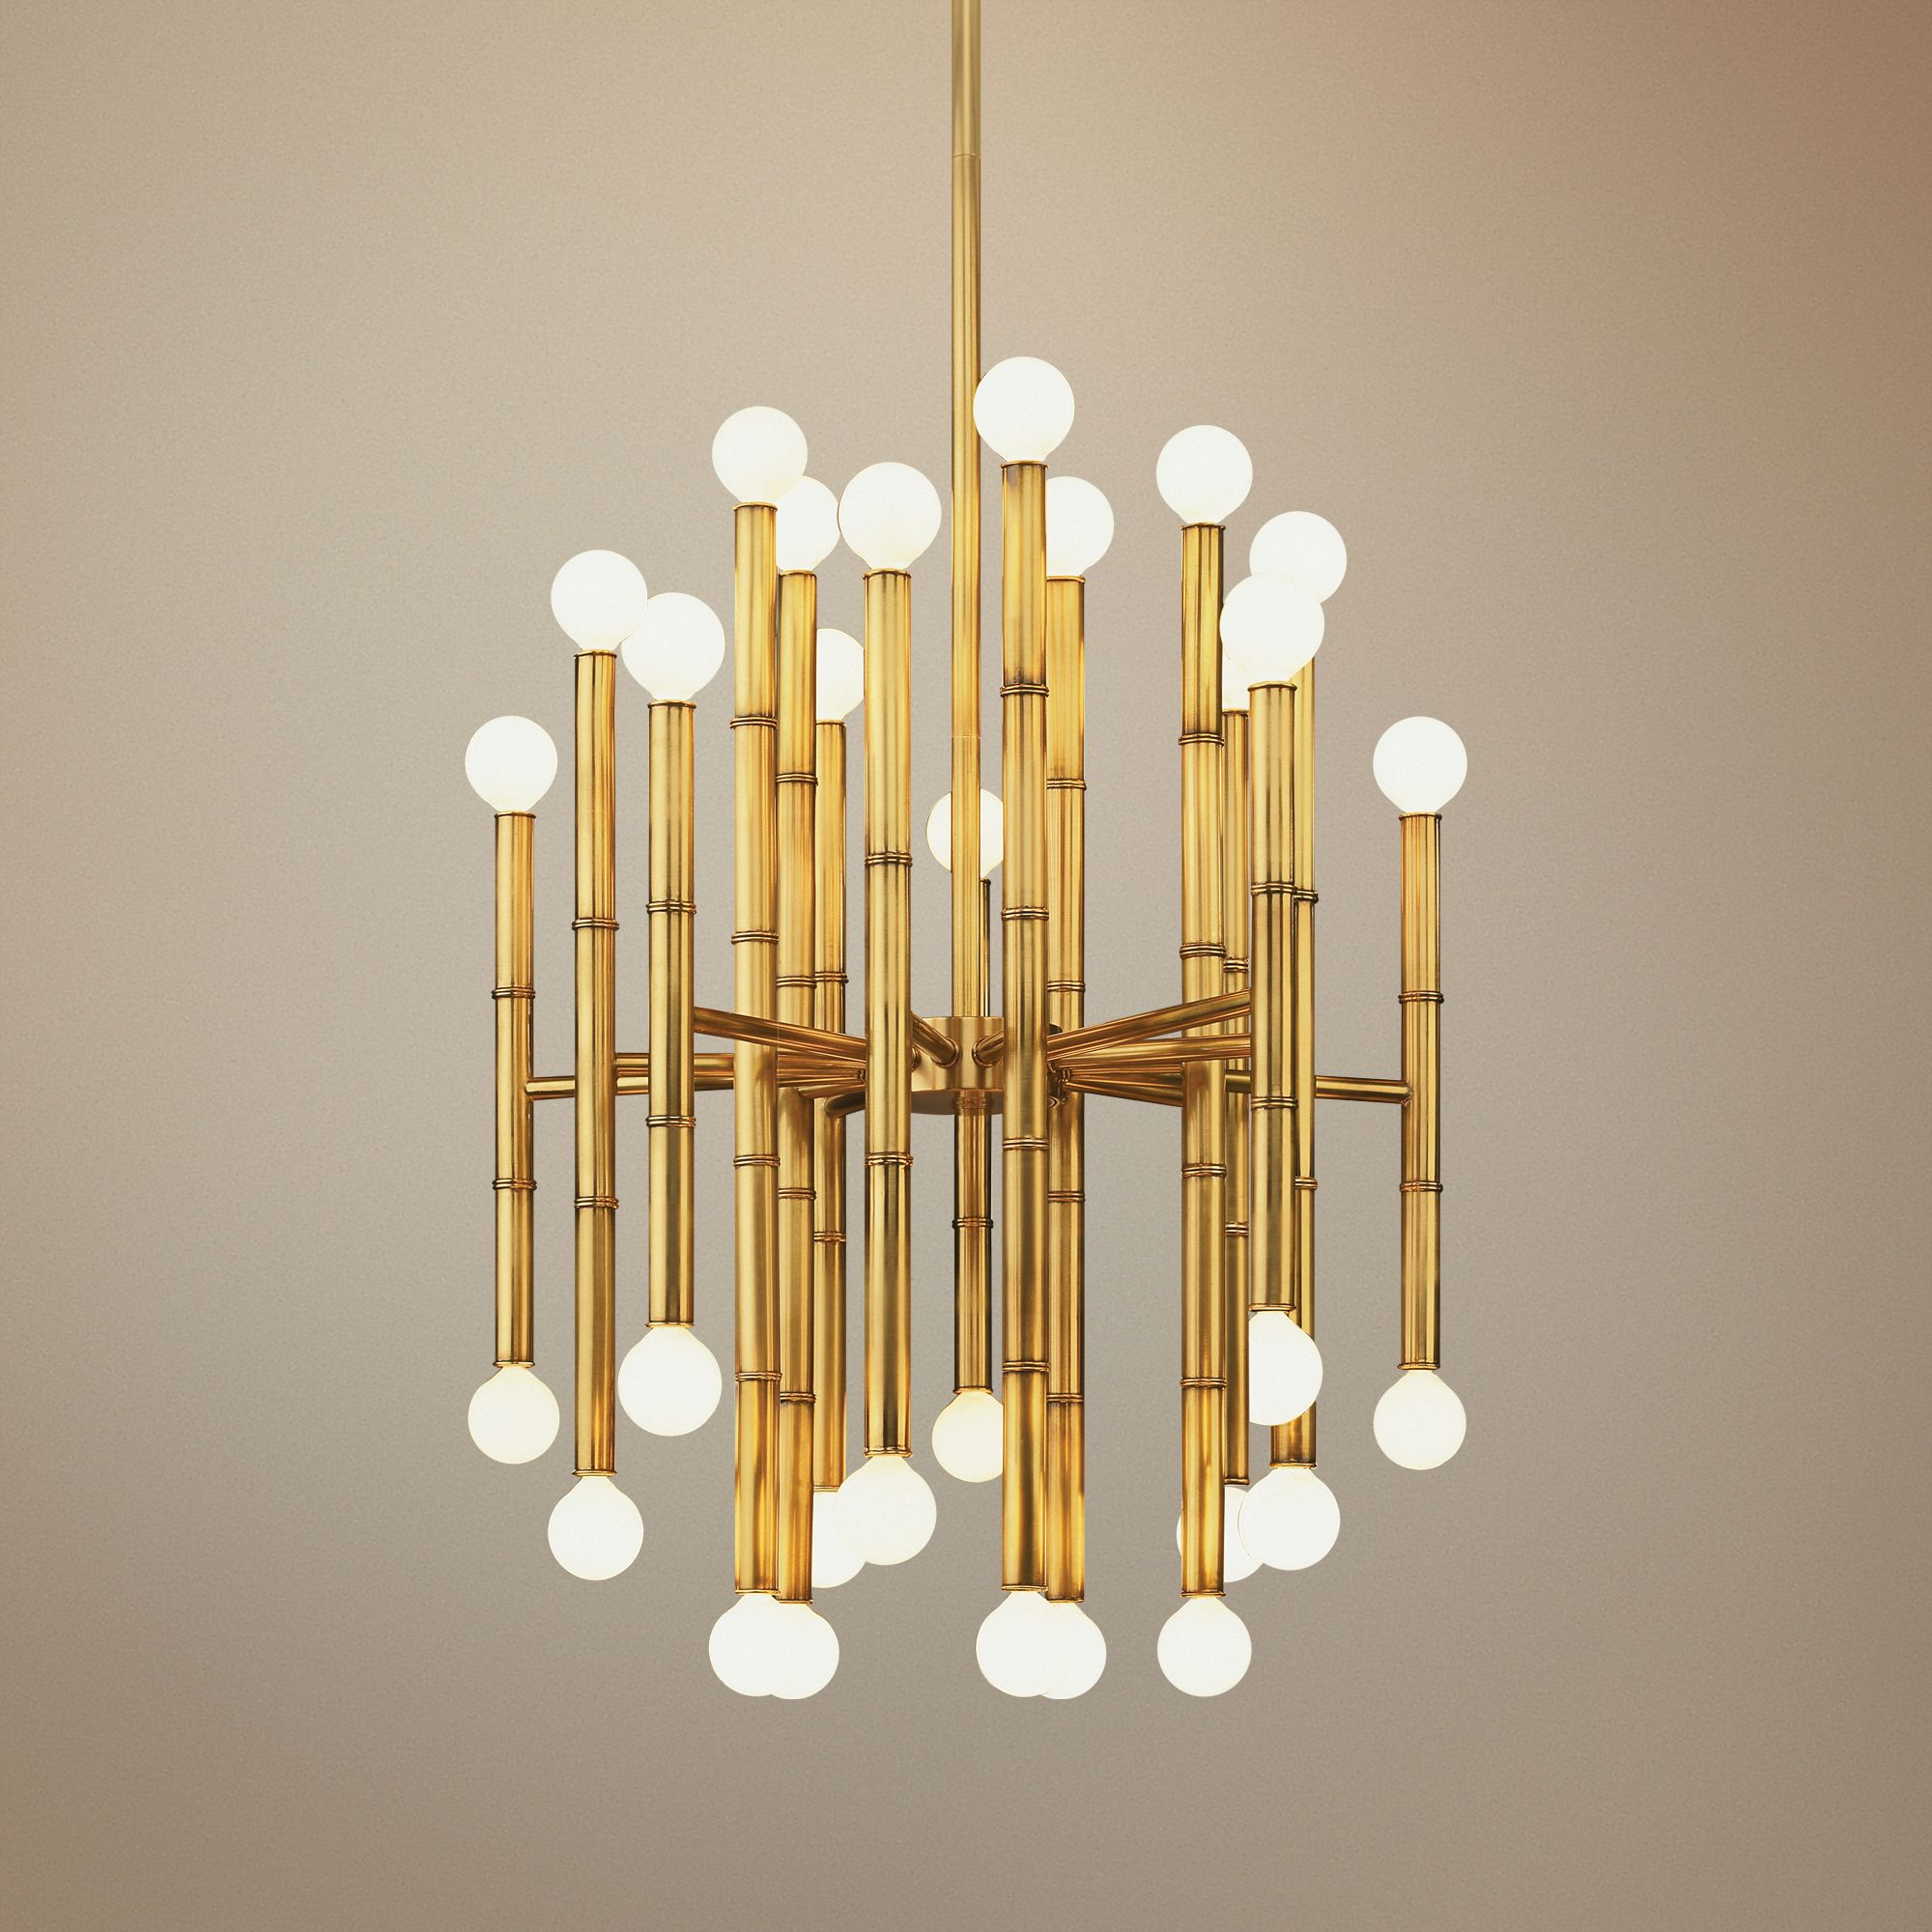 Jonathan Adler Meurice Collection 30-Light Brass Chandelier & Jonathan Adler Lighting Fixtures | Lamps Plus azcodes.com